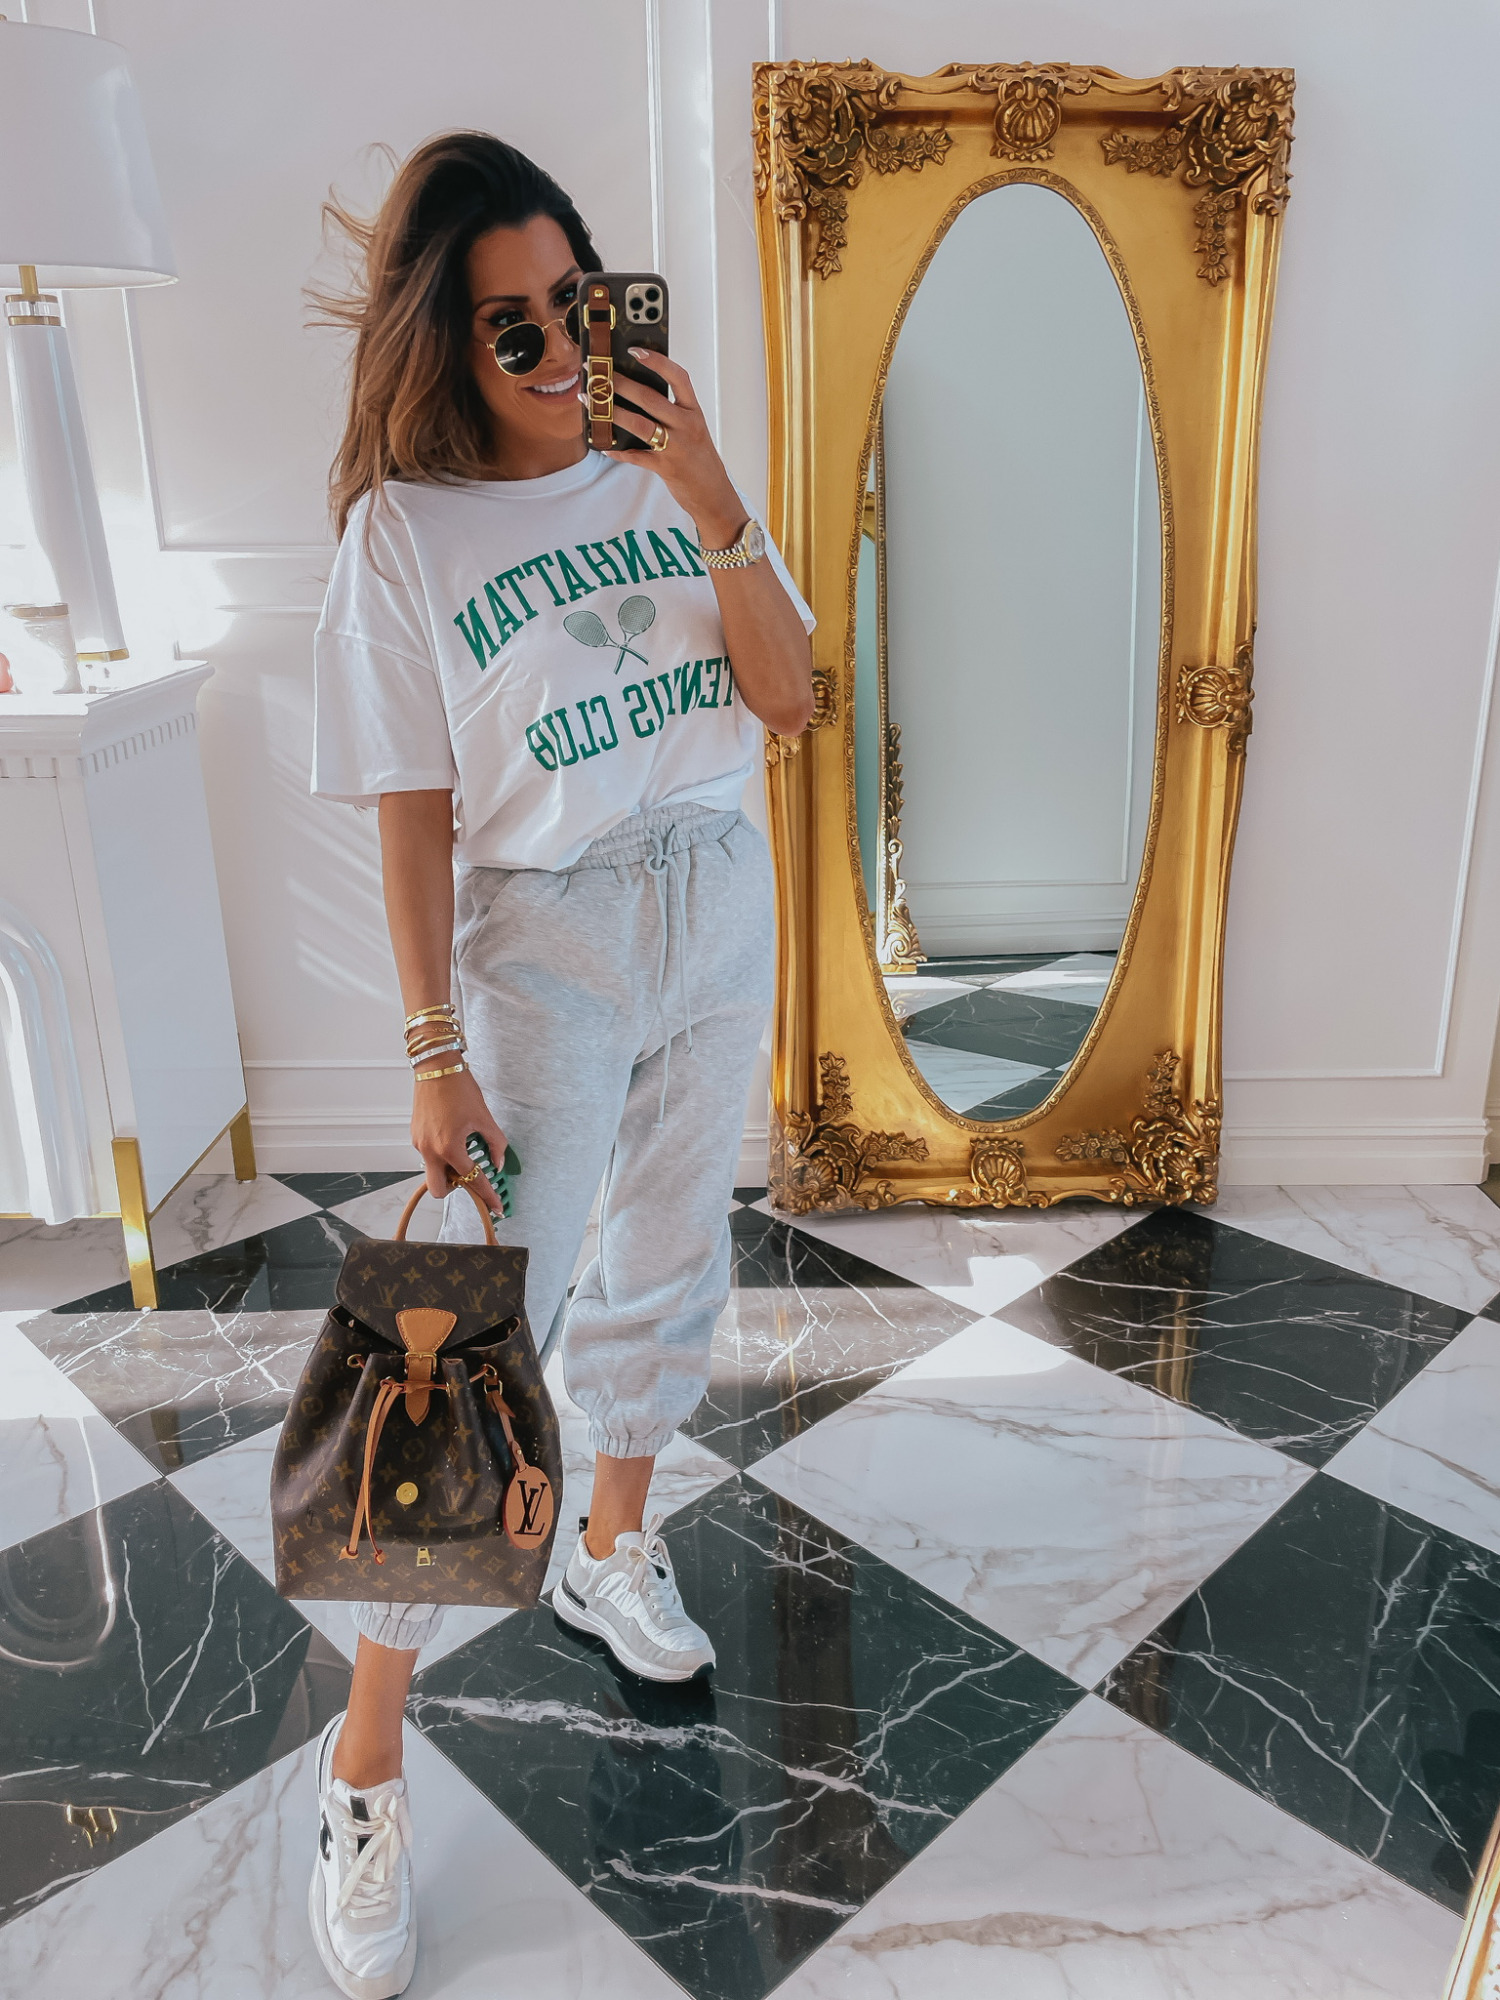 Emily-ann-gemma-abercrombie-tee-shirt-sweatpants-outfit-ltk-day-sale   LTK Sales by popular US fashion blog, The Sweetest Thing: image of Emily Gemma wearing a Manhattan Tennis Club shirt, grey sweatpants and sneakers.